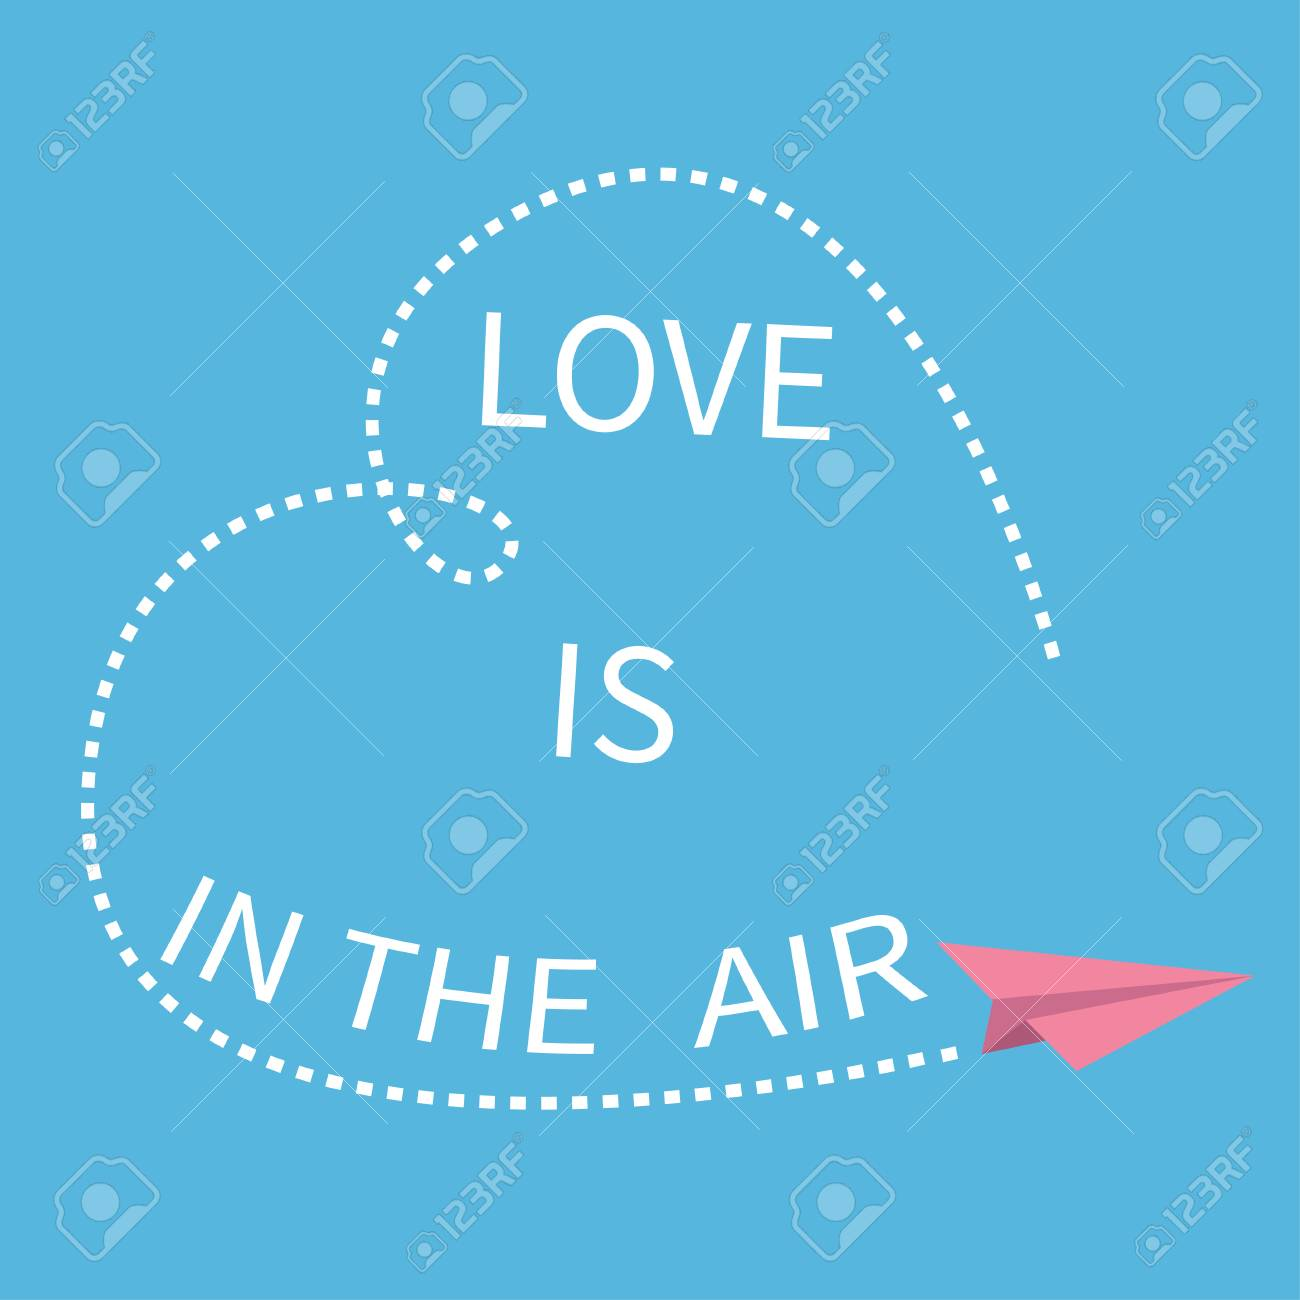 Love is in the air lettering text flying origami paper plane flying origami paper plane dashed heart line jeuxipadfo Gallery